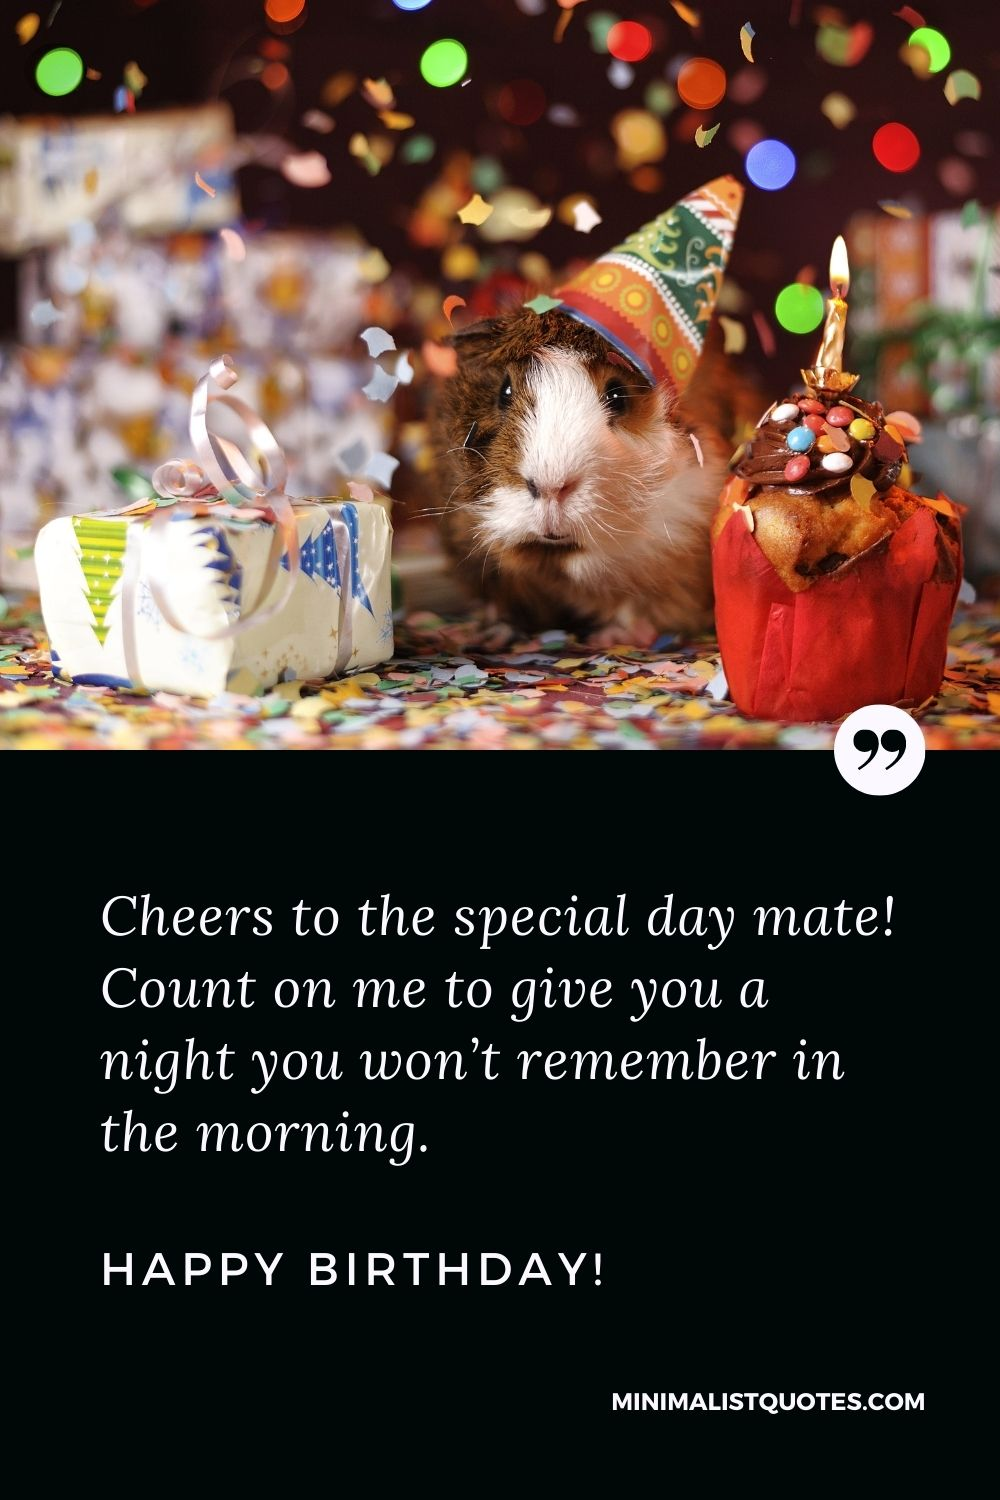 Funny birthday wish for best friend: Cheers to the special day mate! Count on me to give you a night you won't remember in the morning. Happy Birthday!